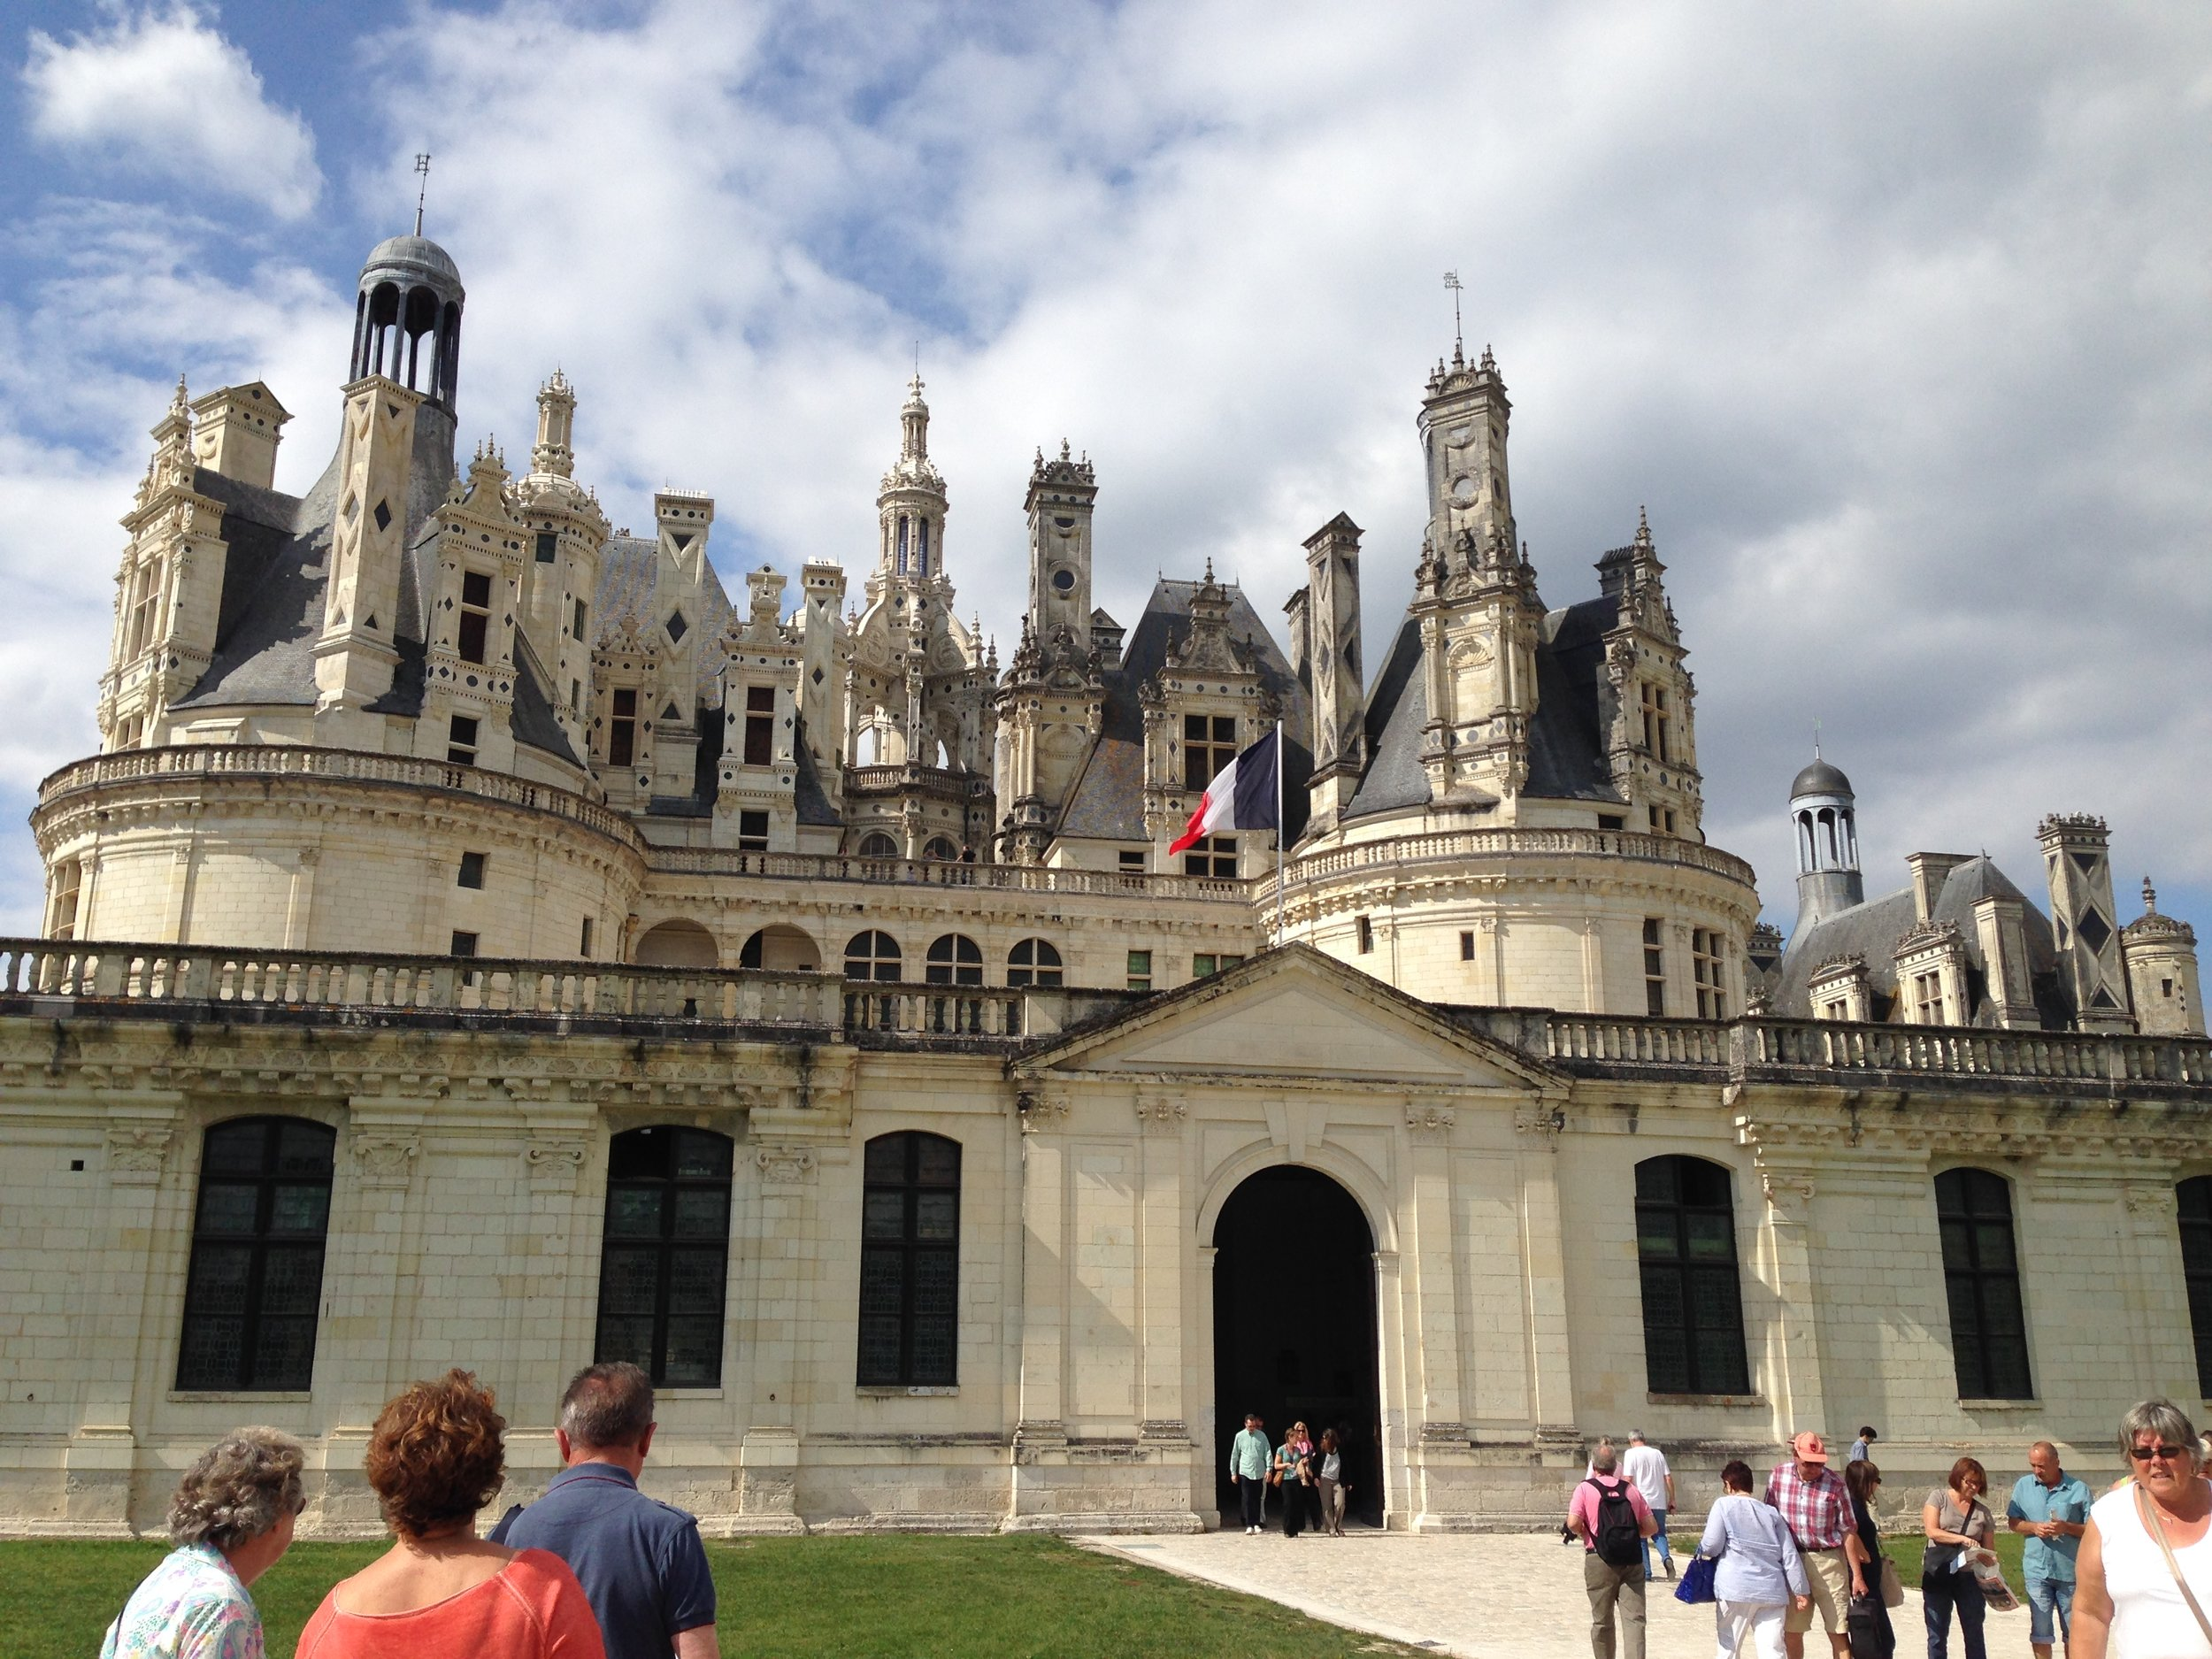 Francis I ,King of France, built this humble hunting lodge called Chateau de Chambord in the Loire Valley at the beginning of his rein in 1519. During his 28 year rein he spent a total of 7 weeks staying at the chateau. The chateau has a total of 440 rooms, 282 fireplaces, and 84 staircases. Just the right amount of space to manage Frances's retinue of 2,000 servants and staff. Being the King had its privileges.  https://en.m.wikipedia.org/wiki/Château_de_Chambord